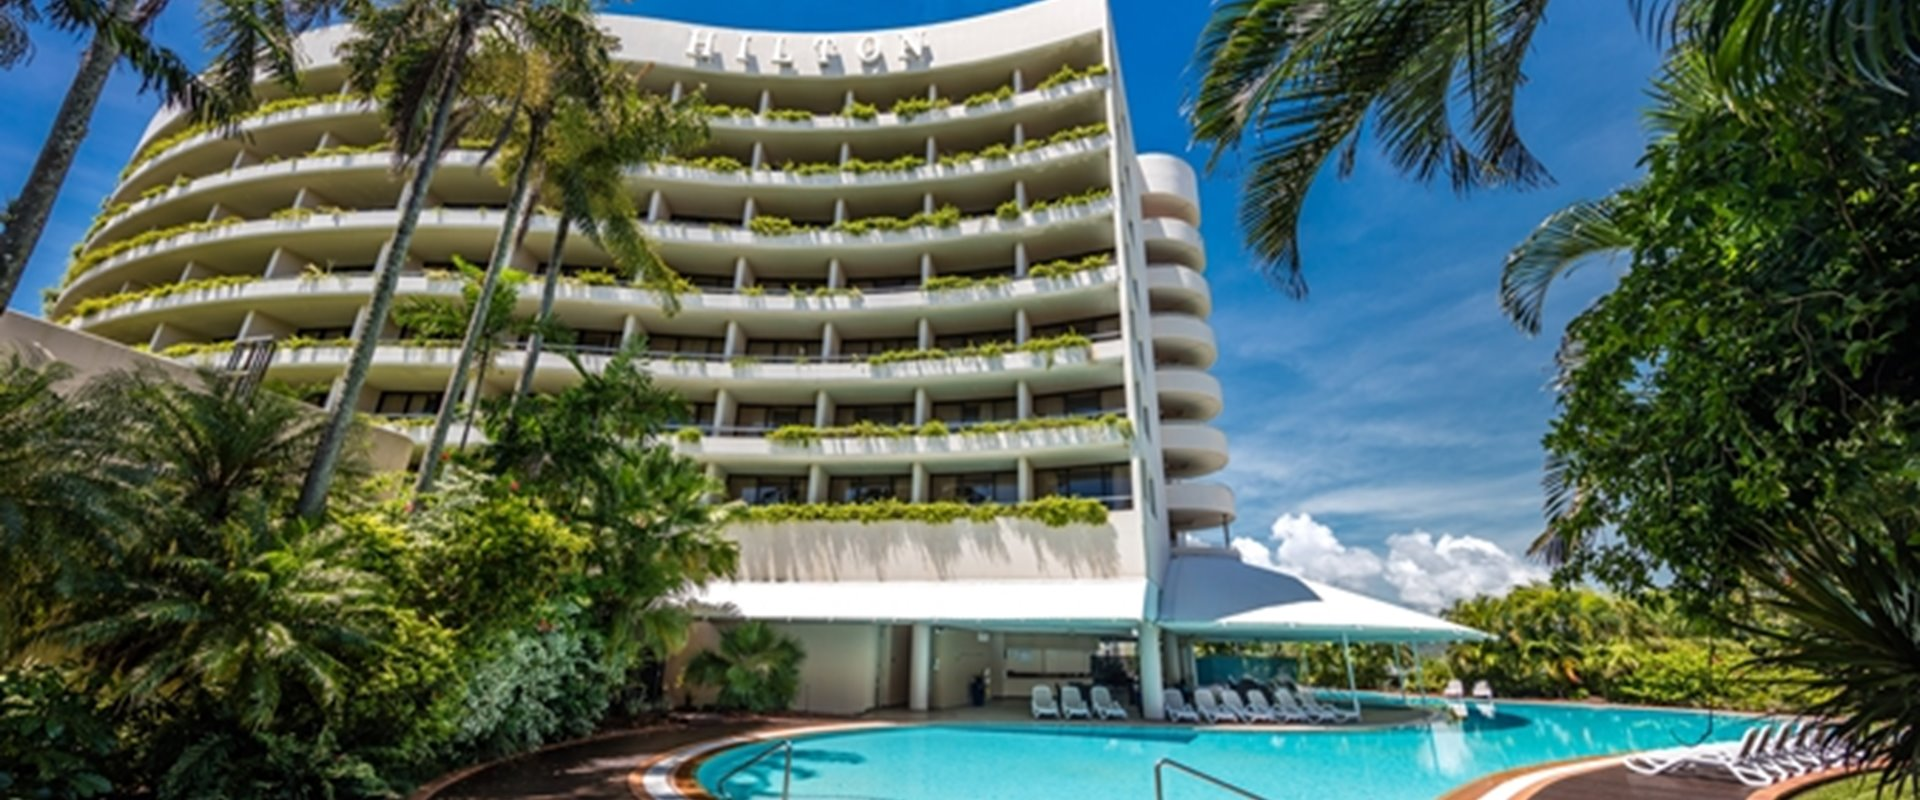 Hilton Cairns | Conference Venues Cairns | Conference Venues Queensland